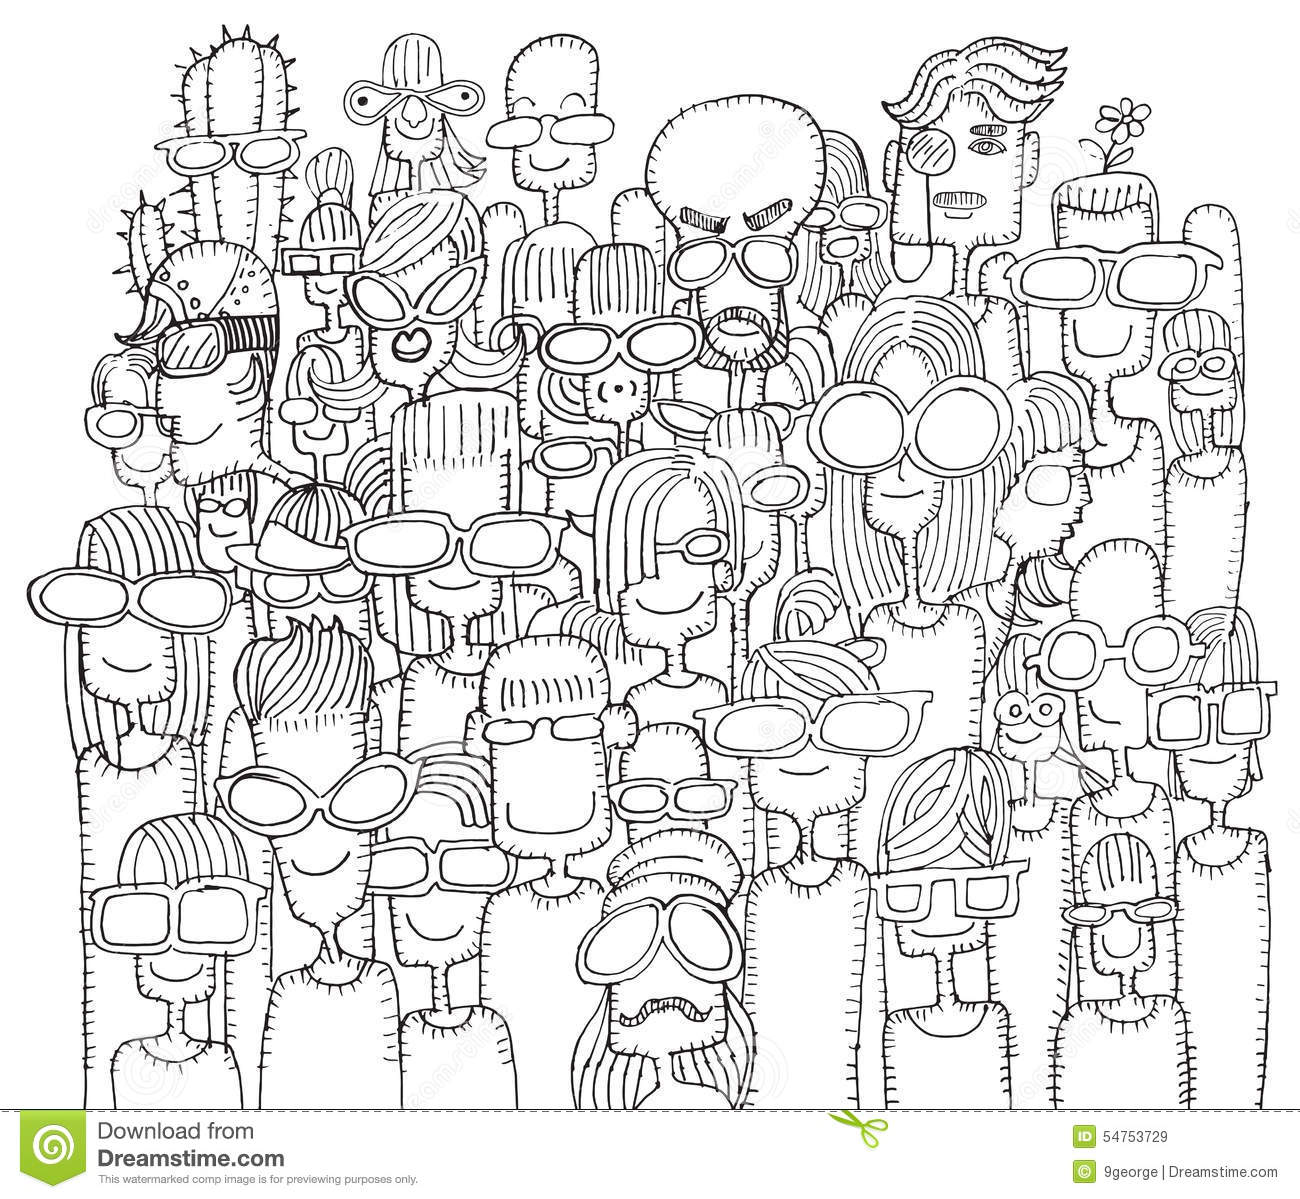 Hipster Hand Drawn Doodle Crowd Of Happy People In